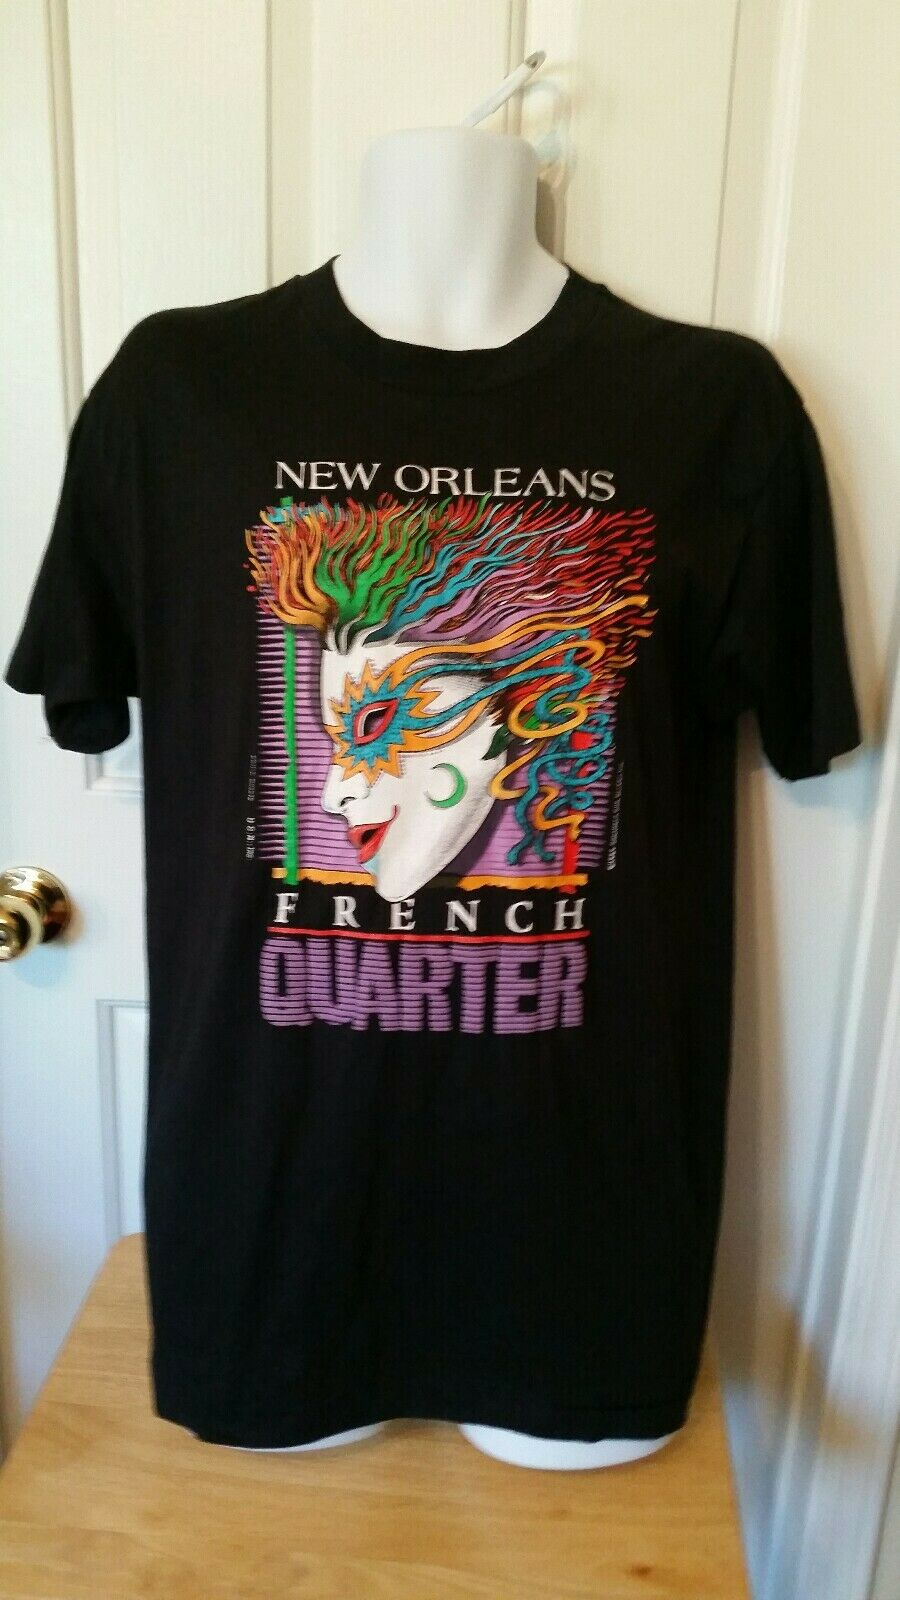 New Orleans French Quarter Single Stich Hanes Fifty-Fifty Made in USA Large